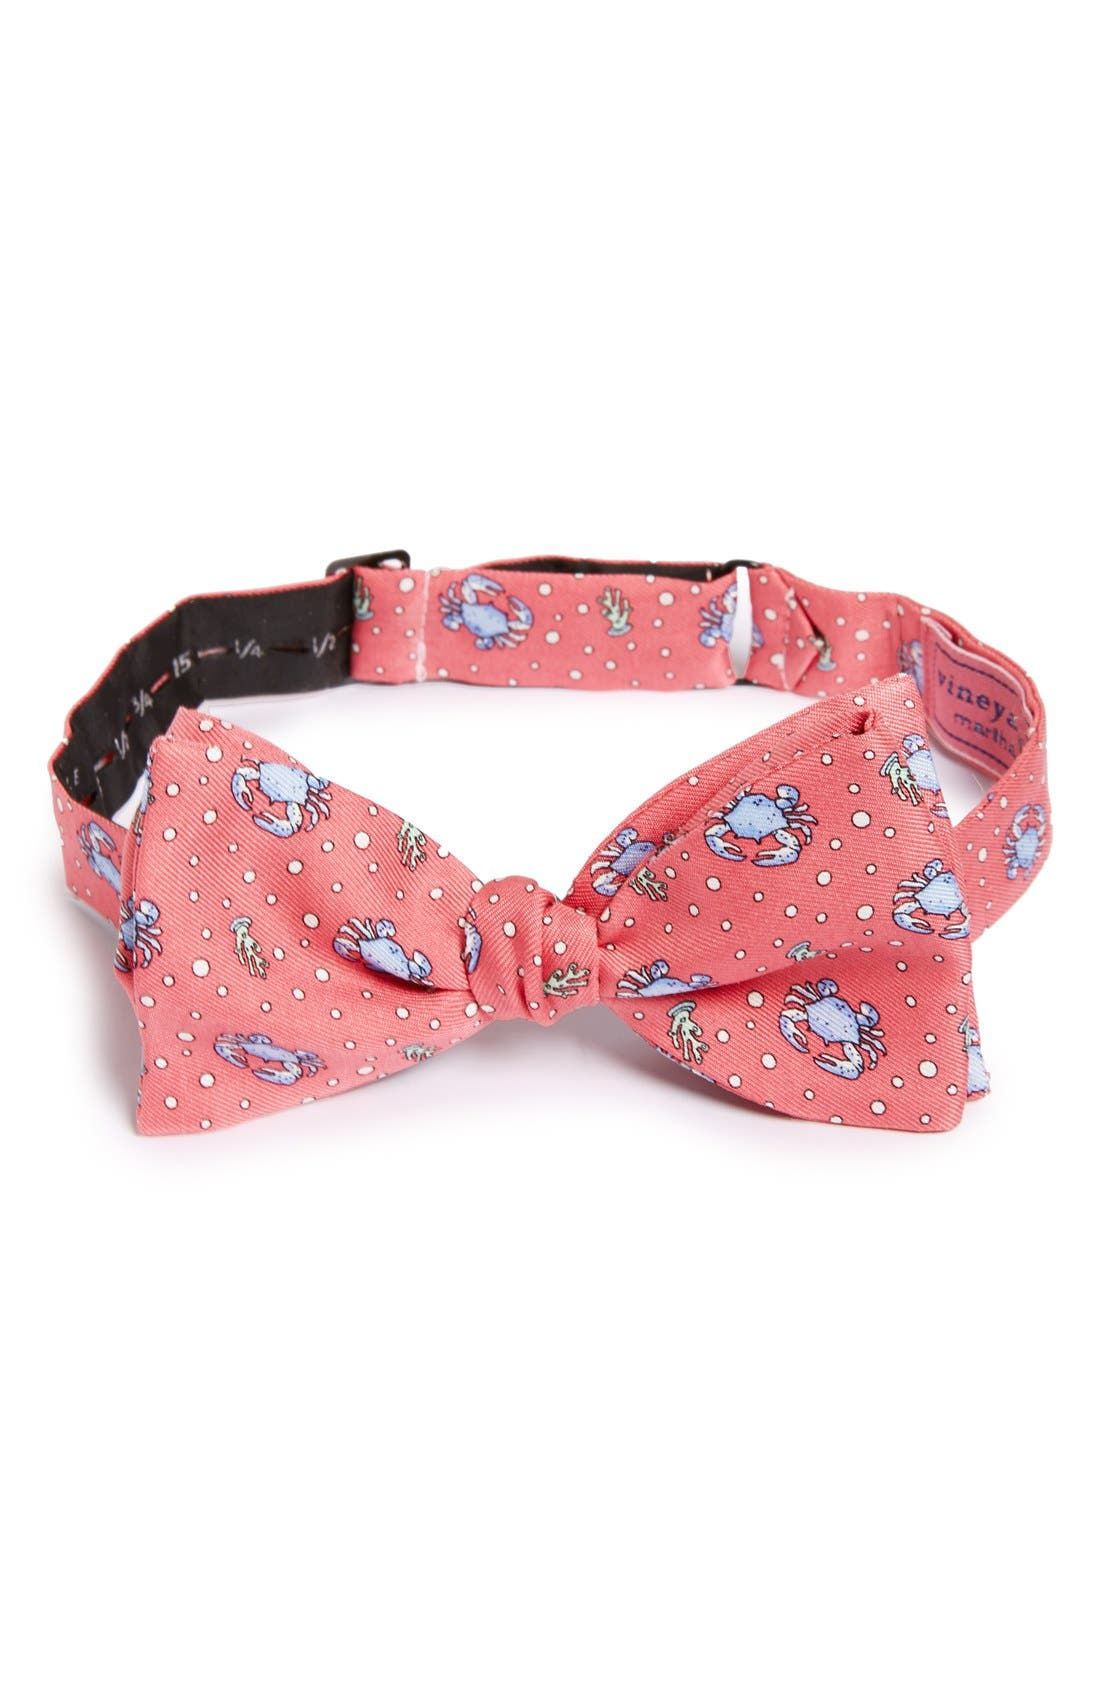 Crab Silk Bow Tie,                         Main,                         color, 660